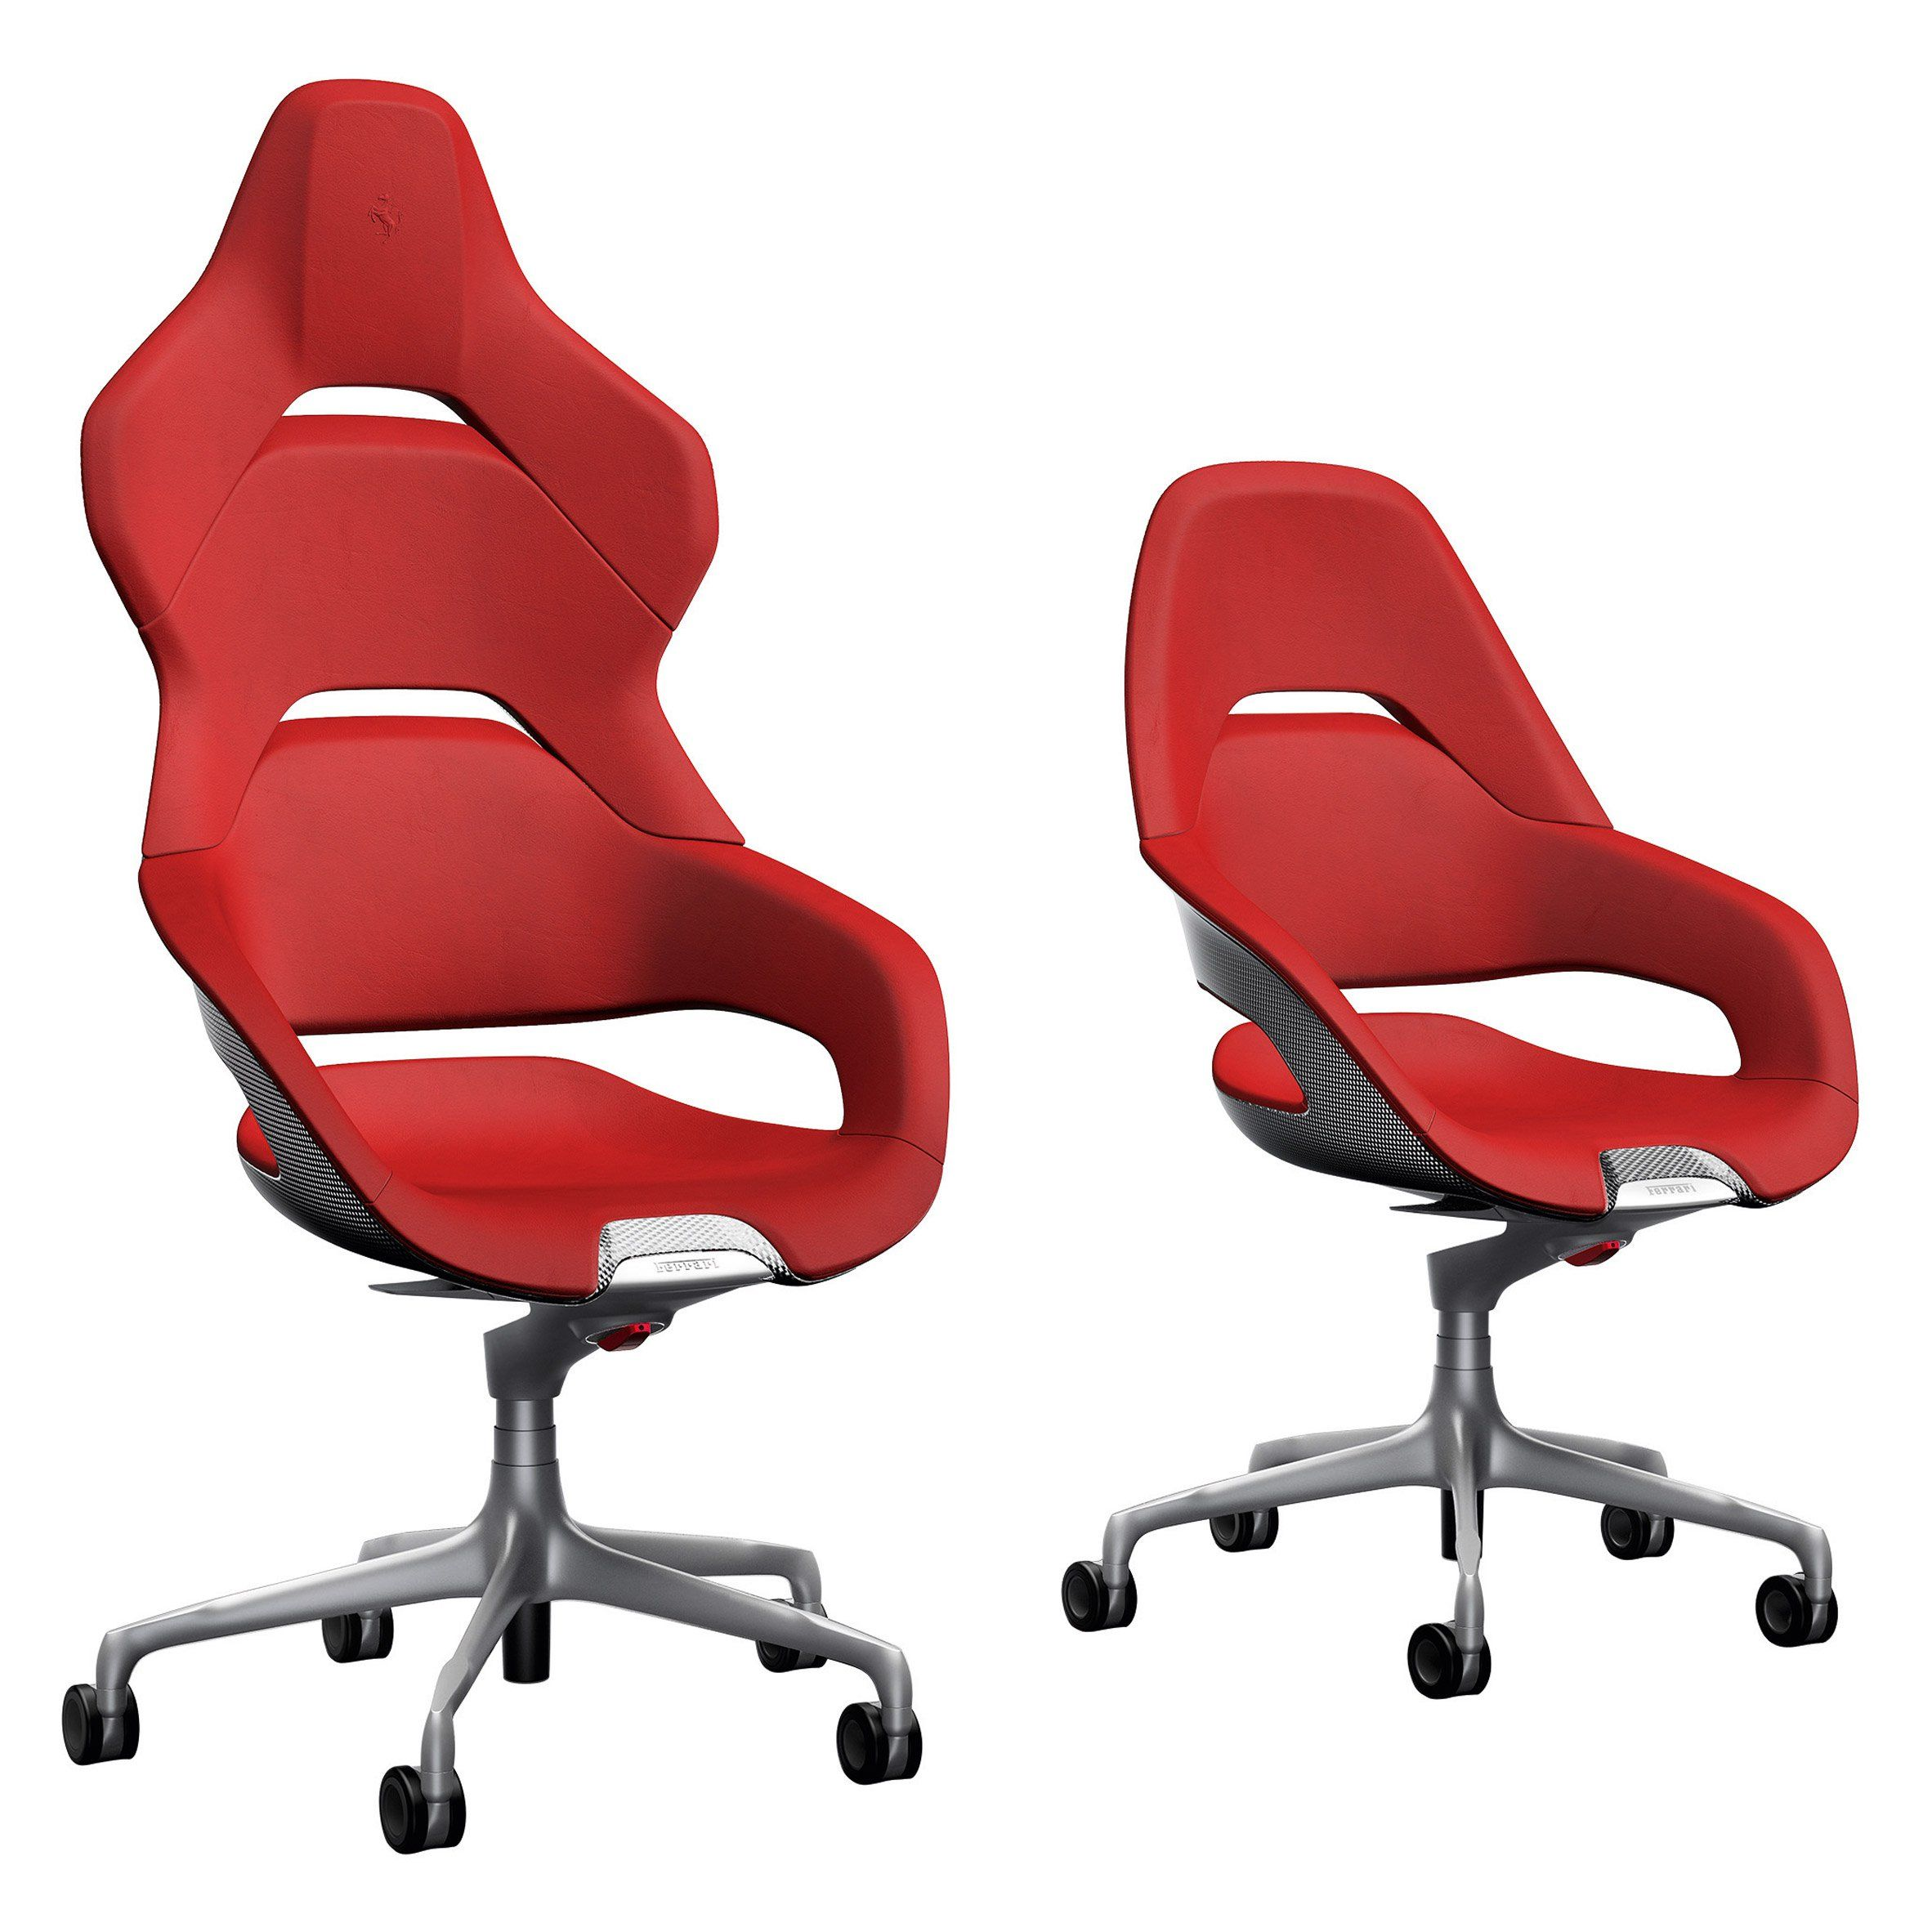 Ferrariu0027s Design Team Has Created An Office Chair For Italian Brand  Poltrona Frau That Resembles The